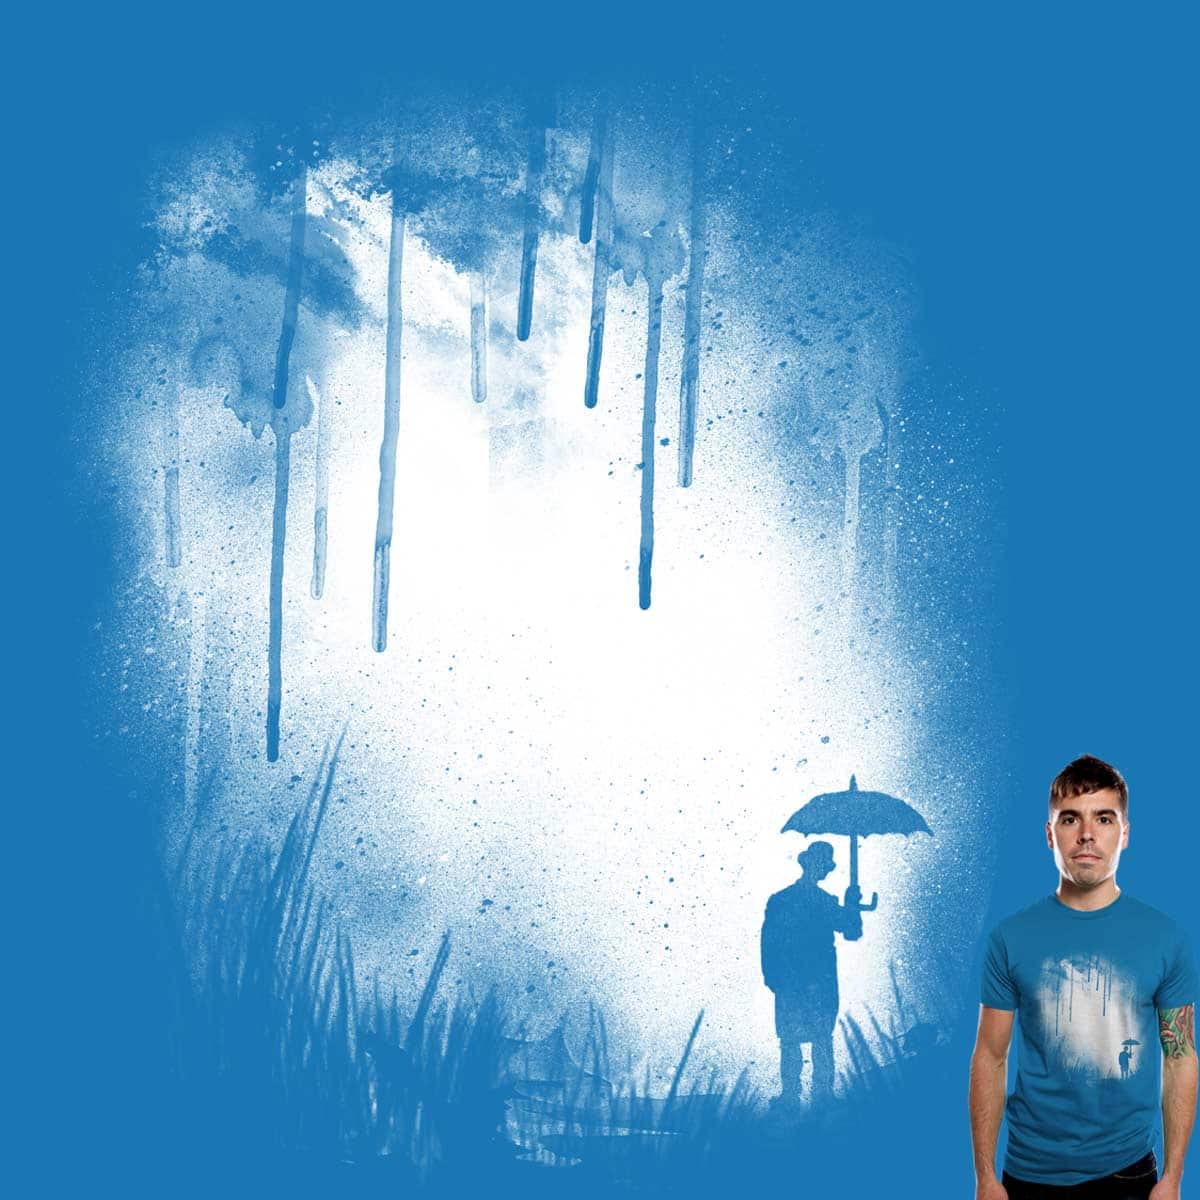 There is always a way out by bandy on Threadless